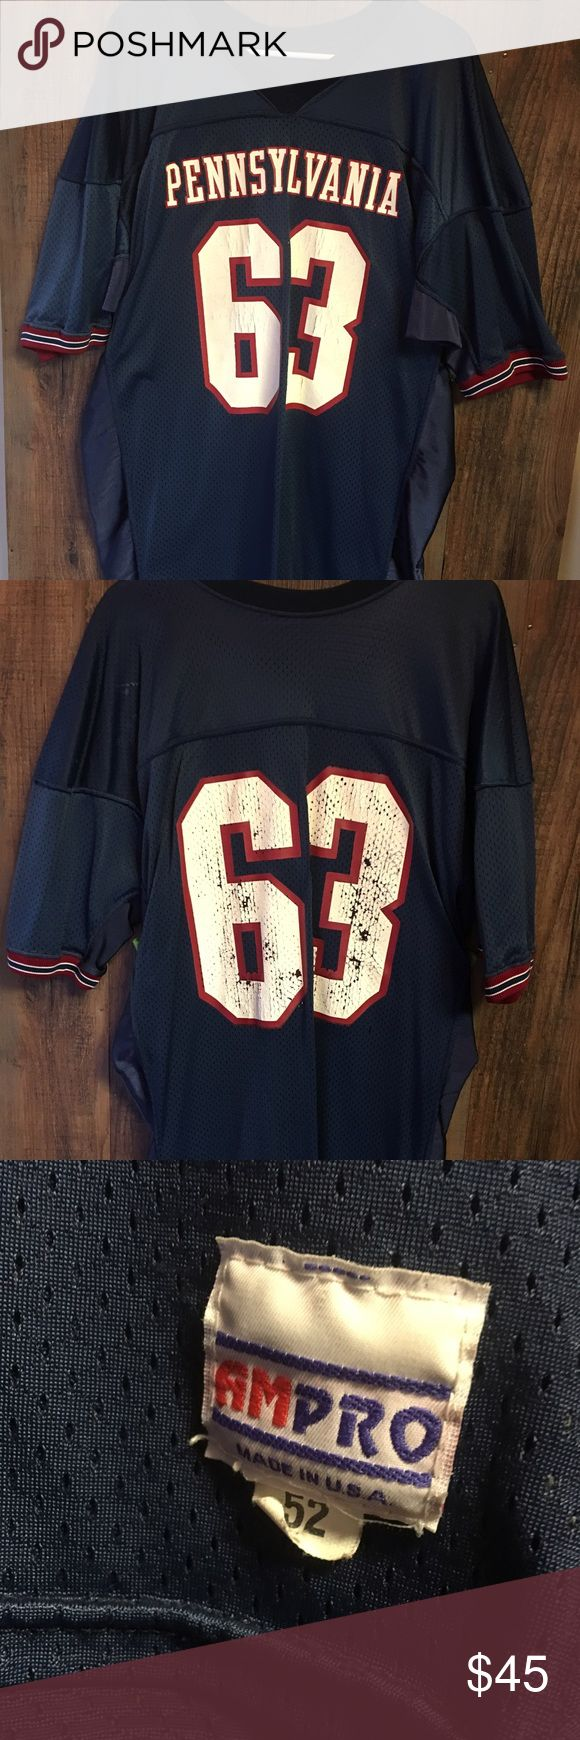 Vintage University of Penn Men's 52Football Jersey Vintage University of Pennsylvania Men's Size 52(XXL) Colloege Football Jersey. Only flaw is the numbers have some wear on them due to the age of this jersey. Jersey is over 30 years old. Made in the USA. AM Pro Shirts